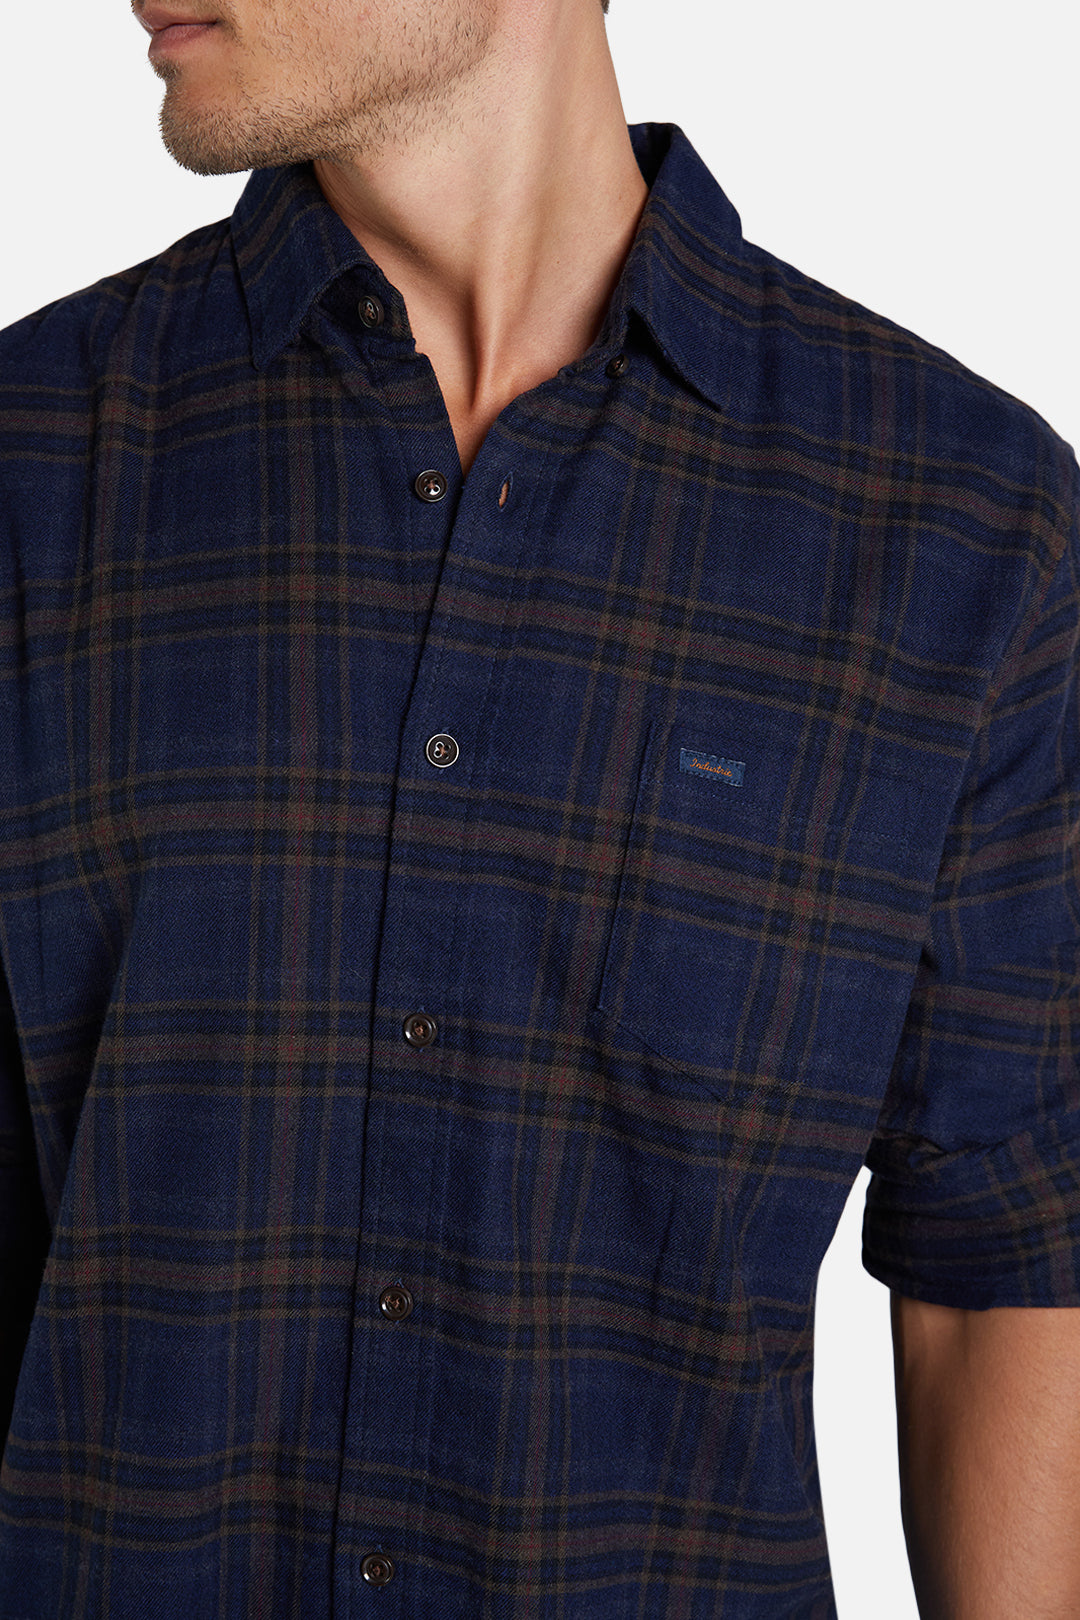 The Holt L/S Shirt - Navy Brown